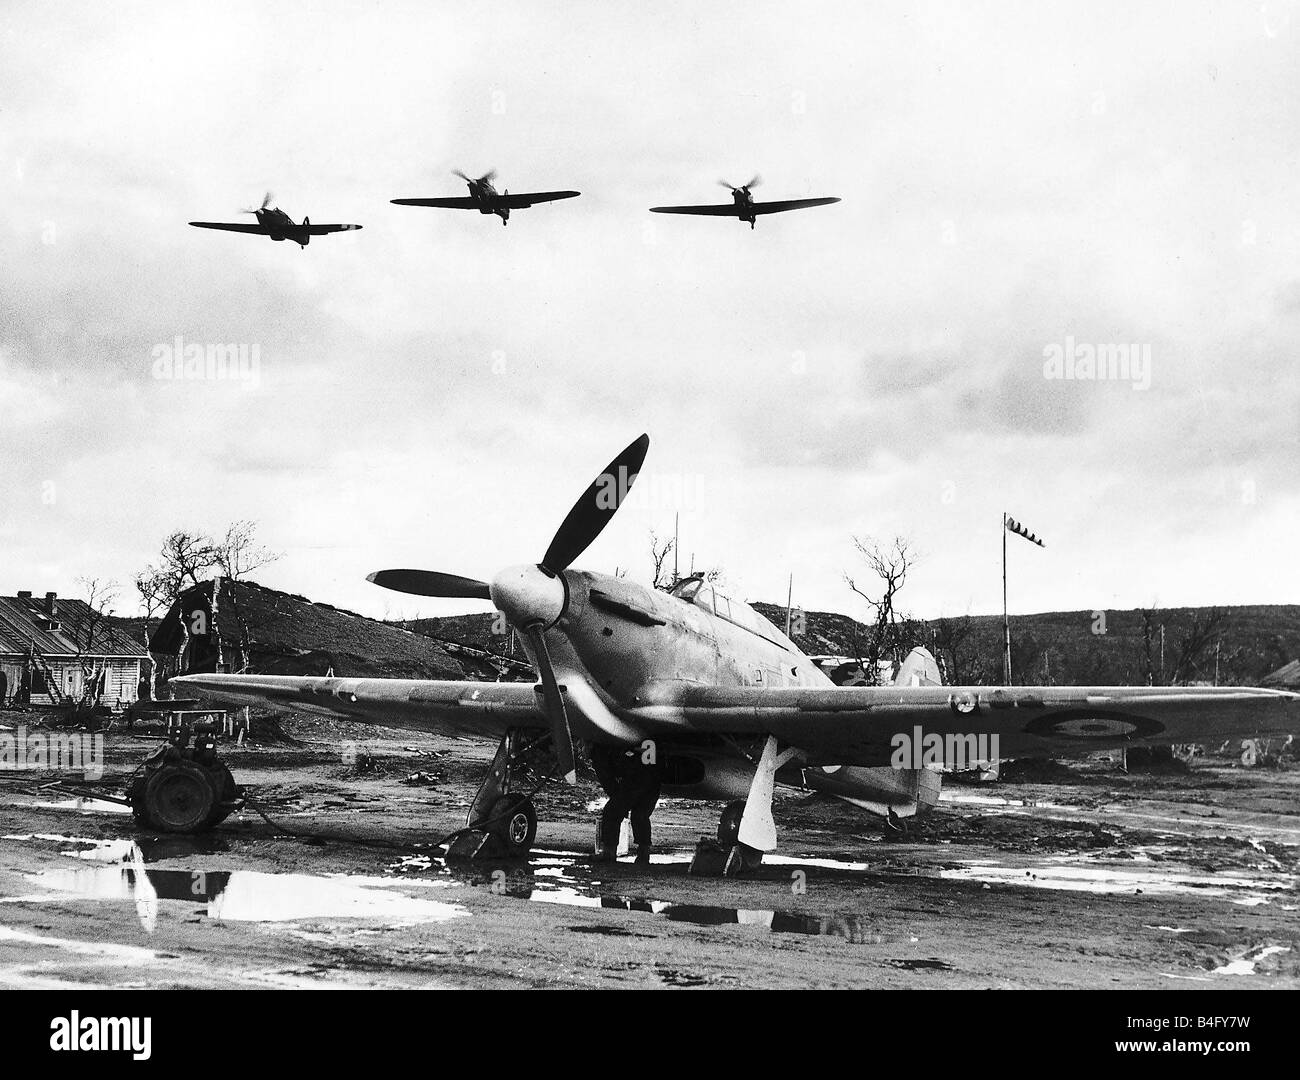 An RAF Hawker Hurricane sits on a muddy Russian airfield as Hurricanes fly overhead WW2 1941 - Stock Image